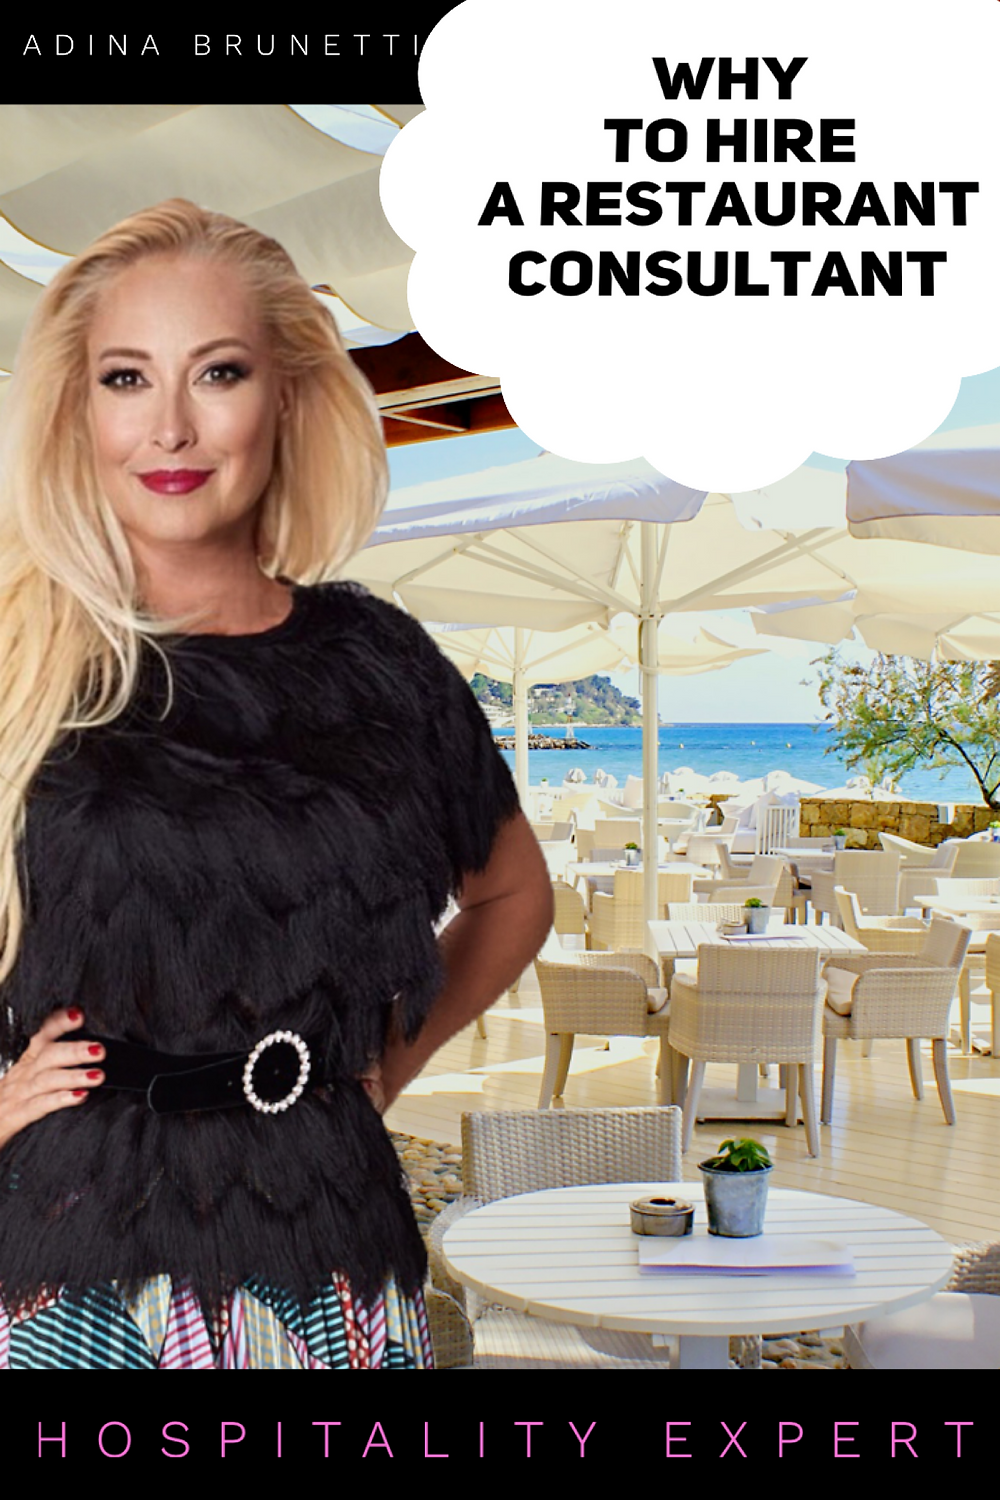 Why to Hire a Restaurant Consultant. Adina Brunetti